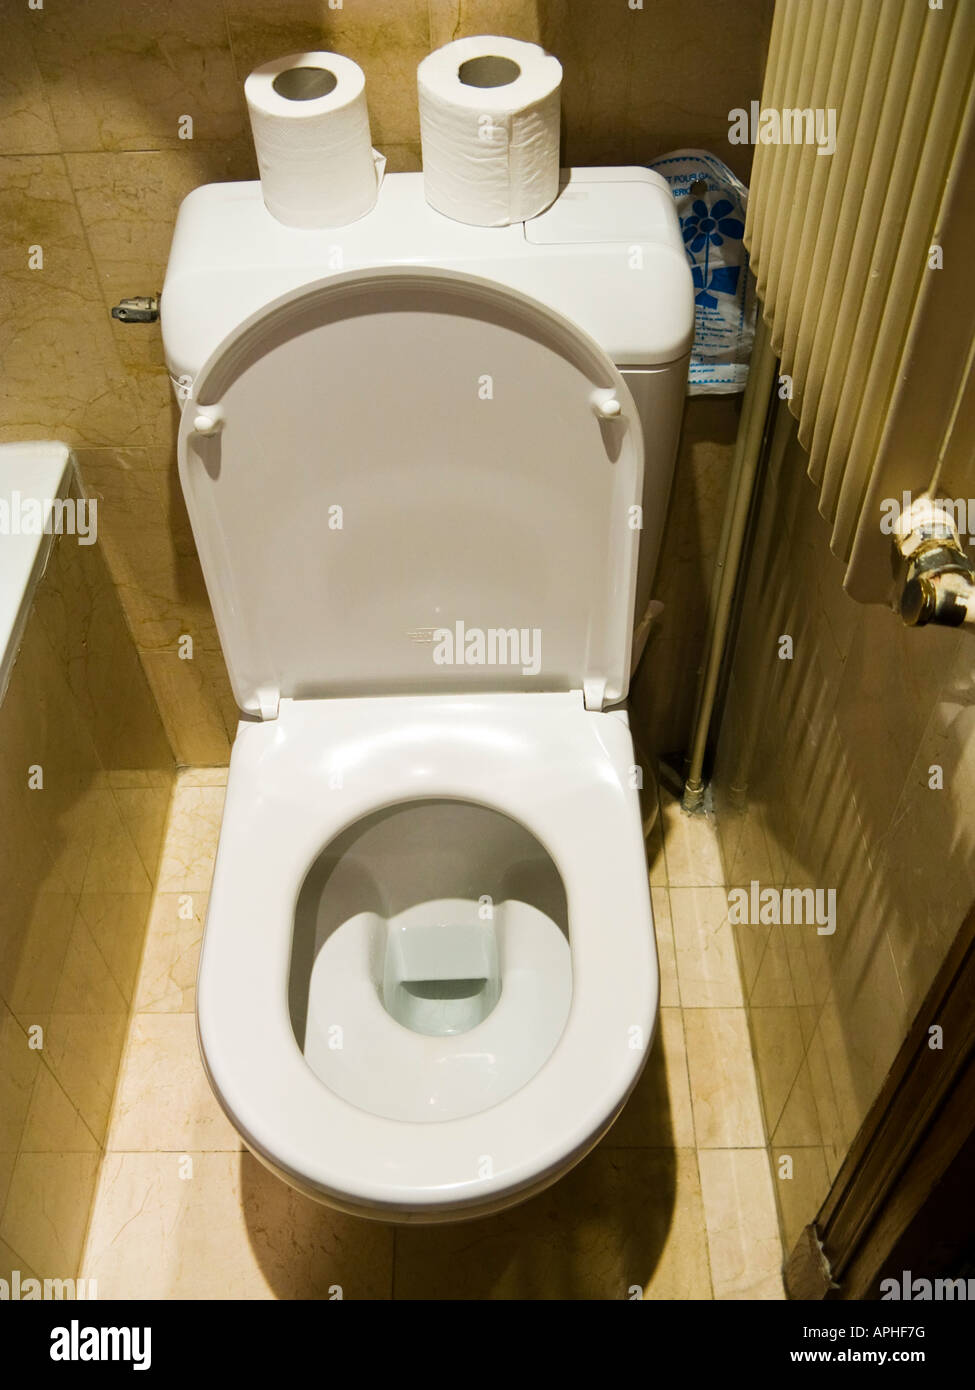 Toilet wc in a small hotel bathroom - Stock Image